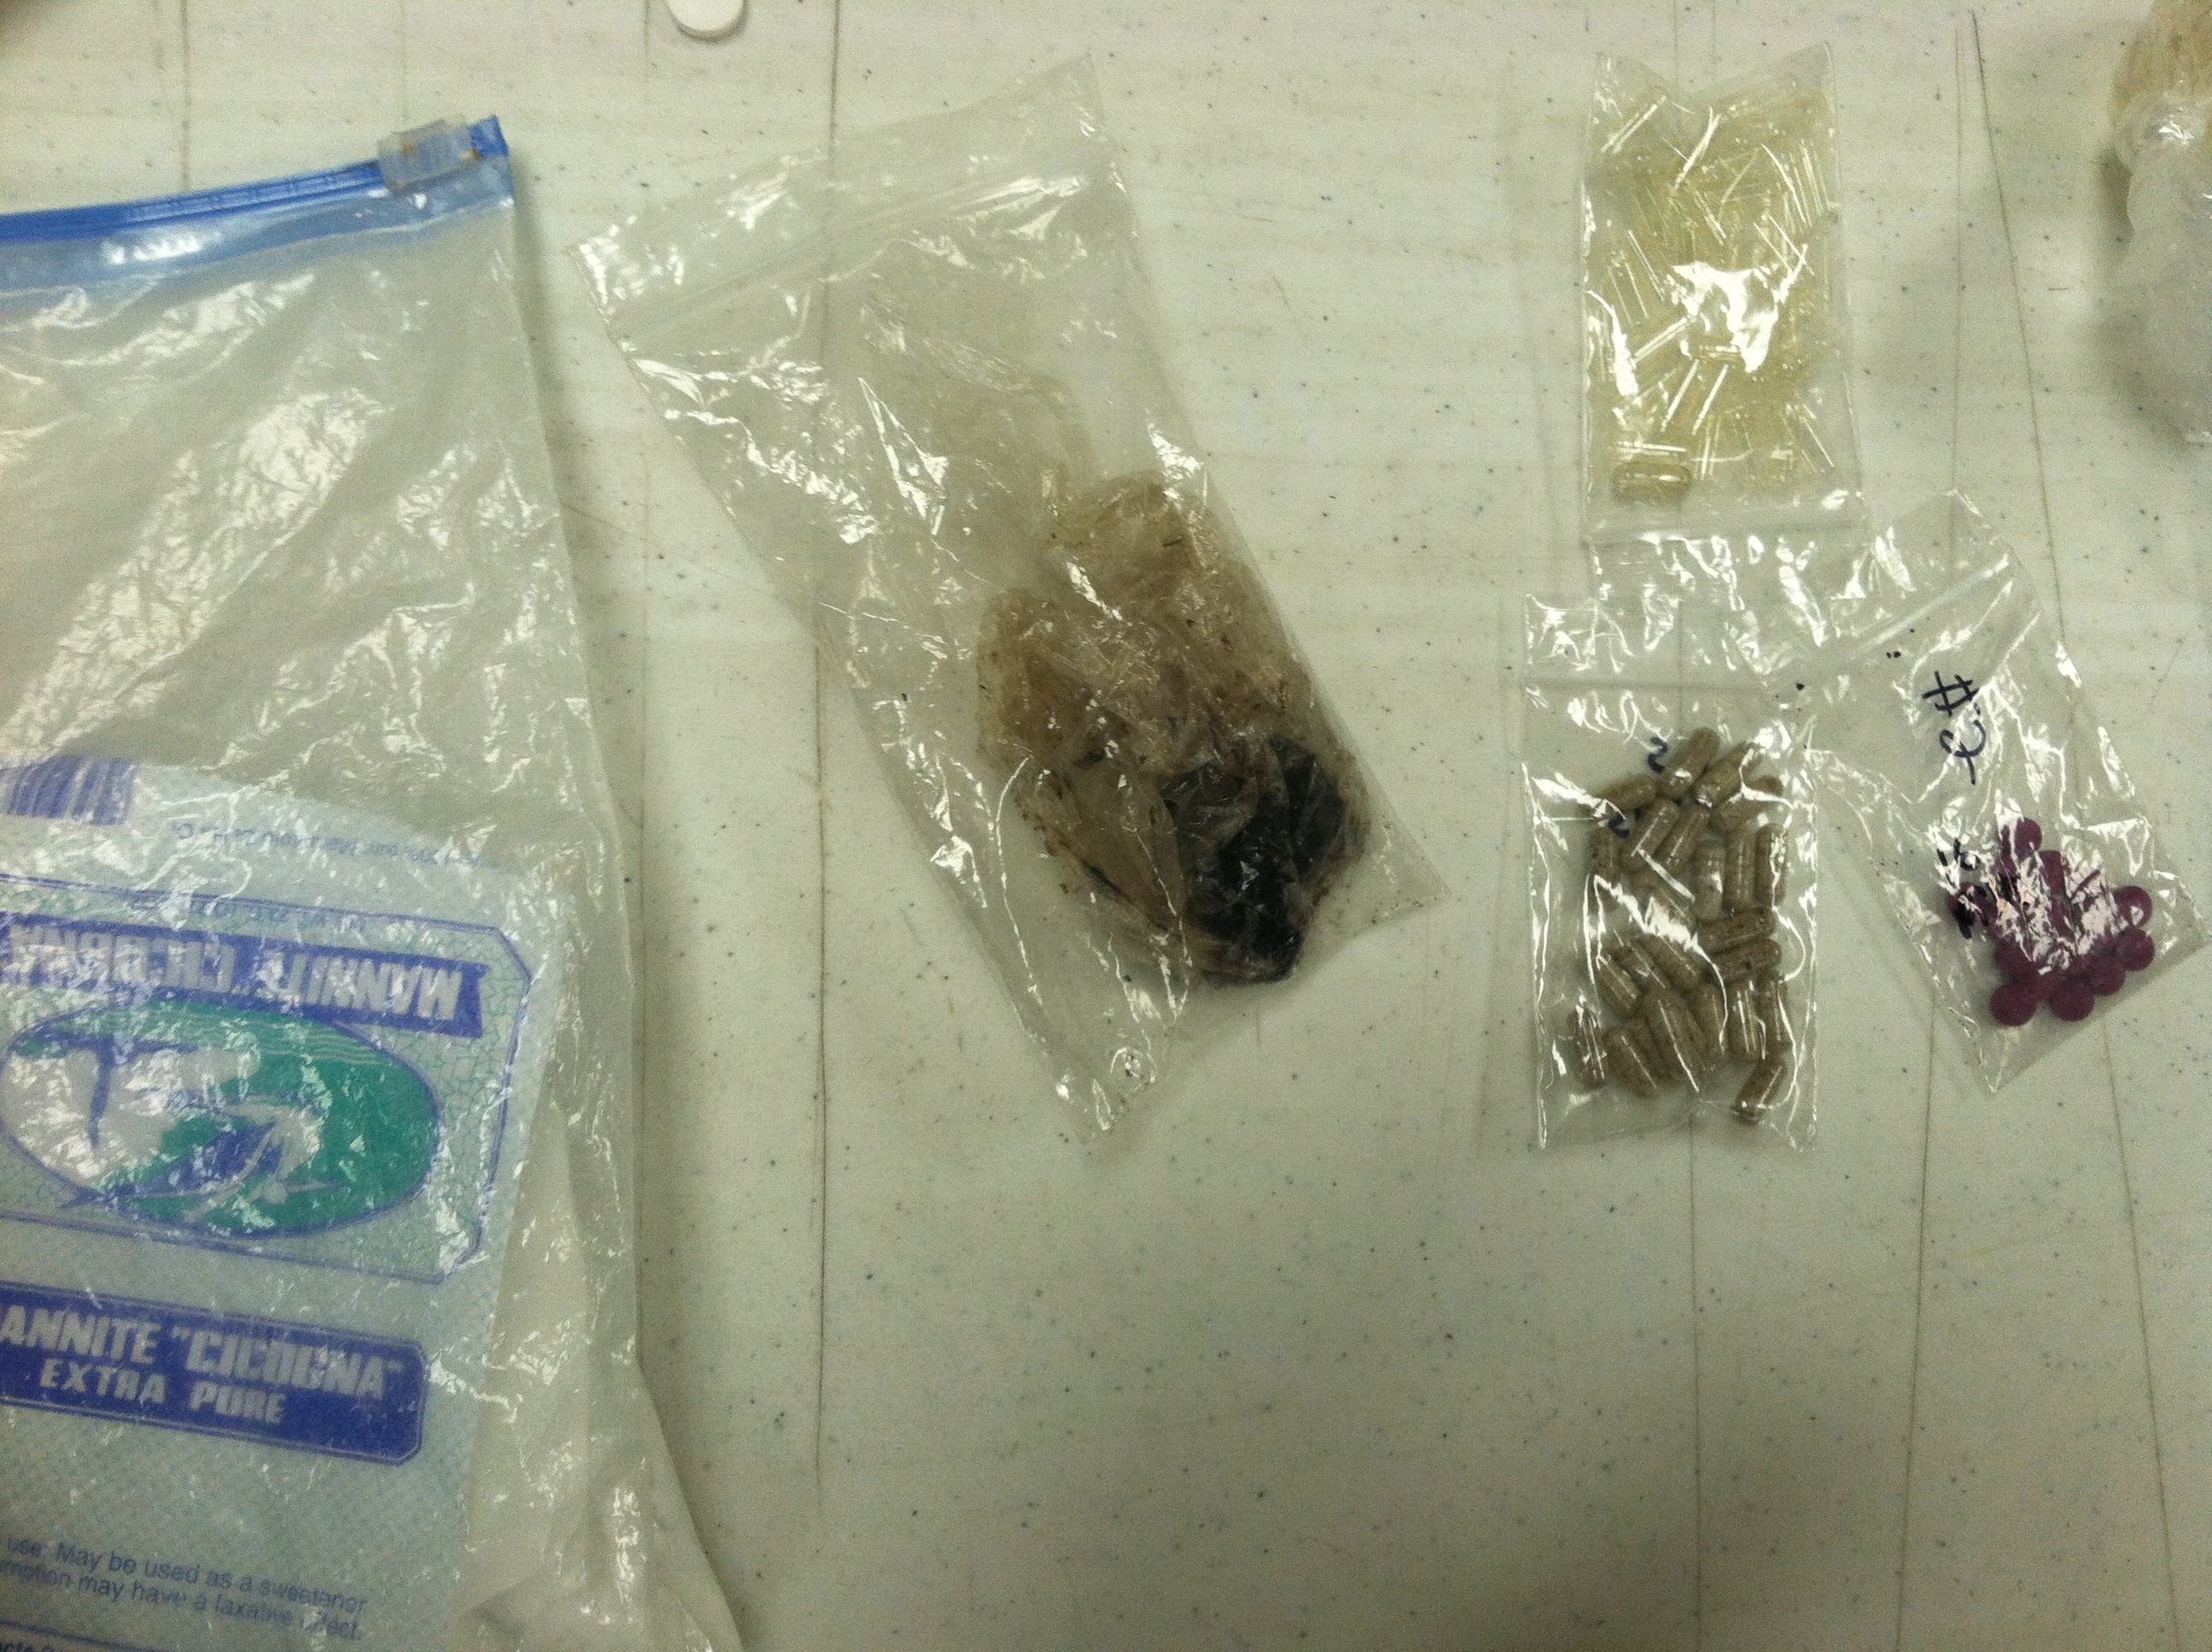 Black tar heroin and other items seized during drug bust